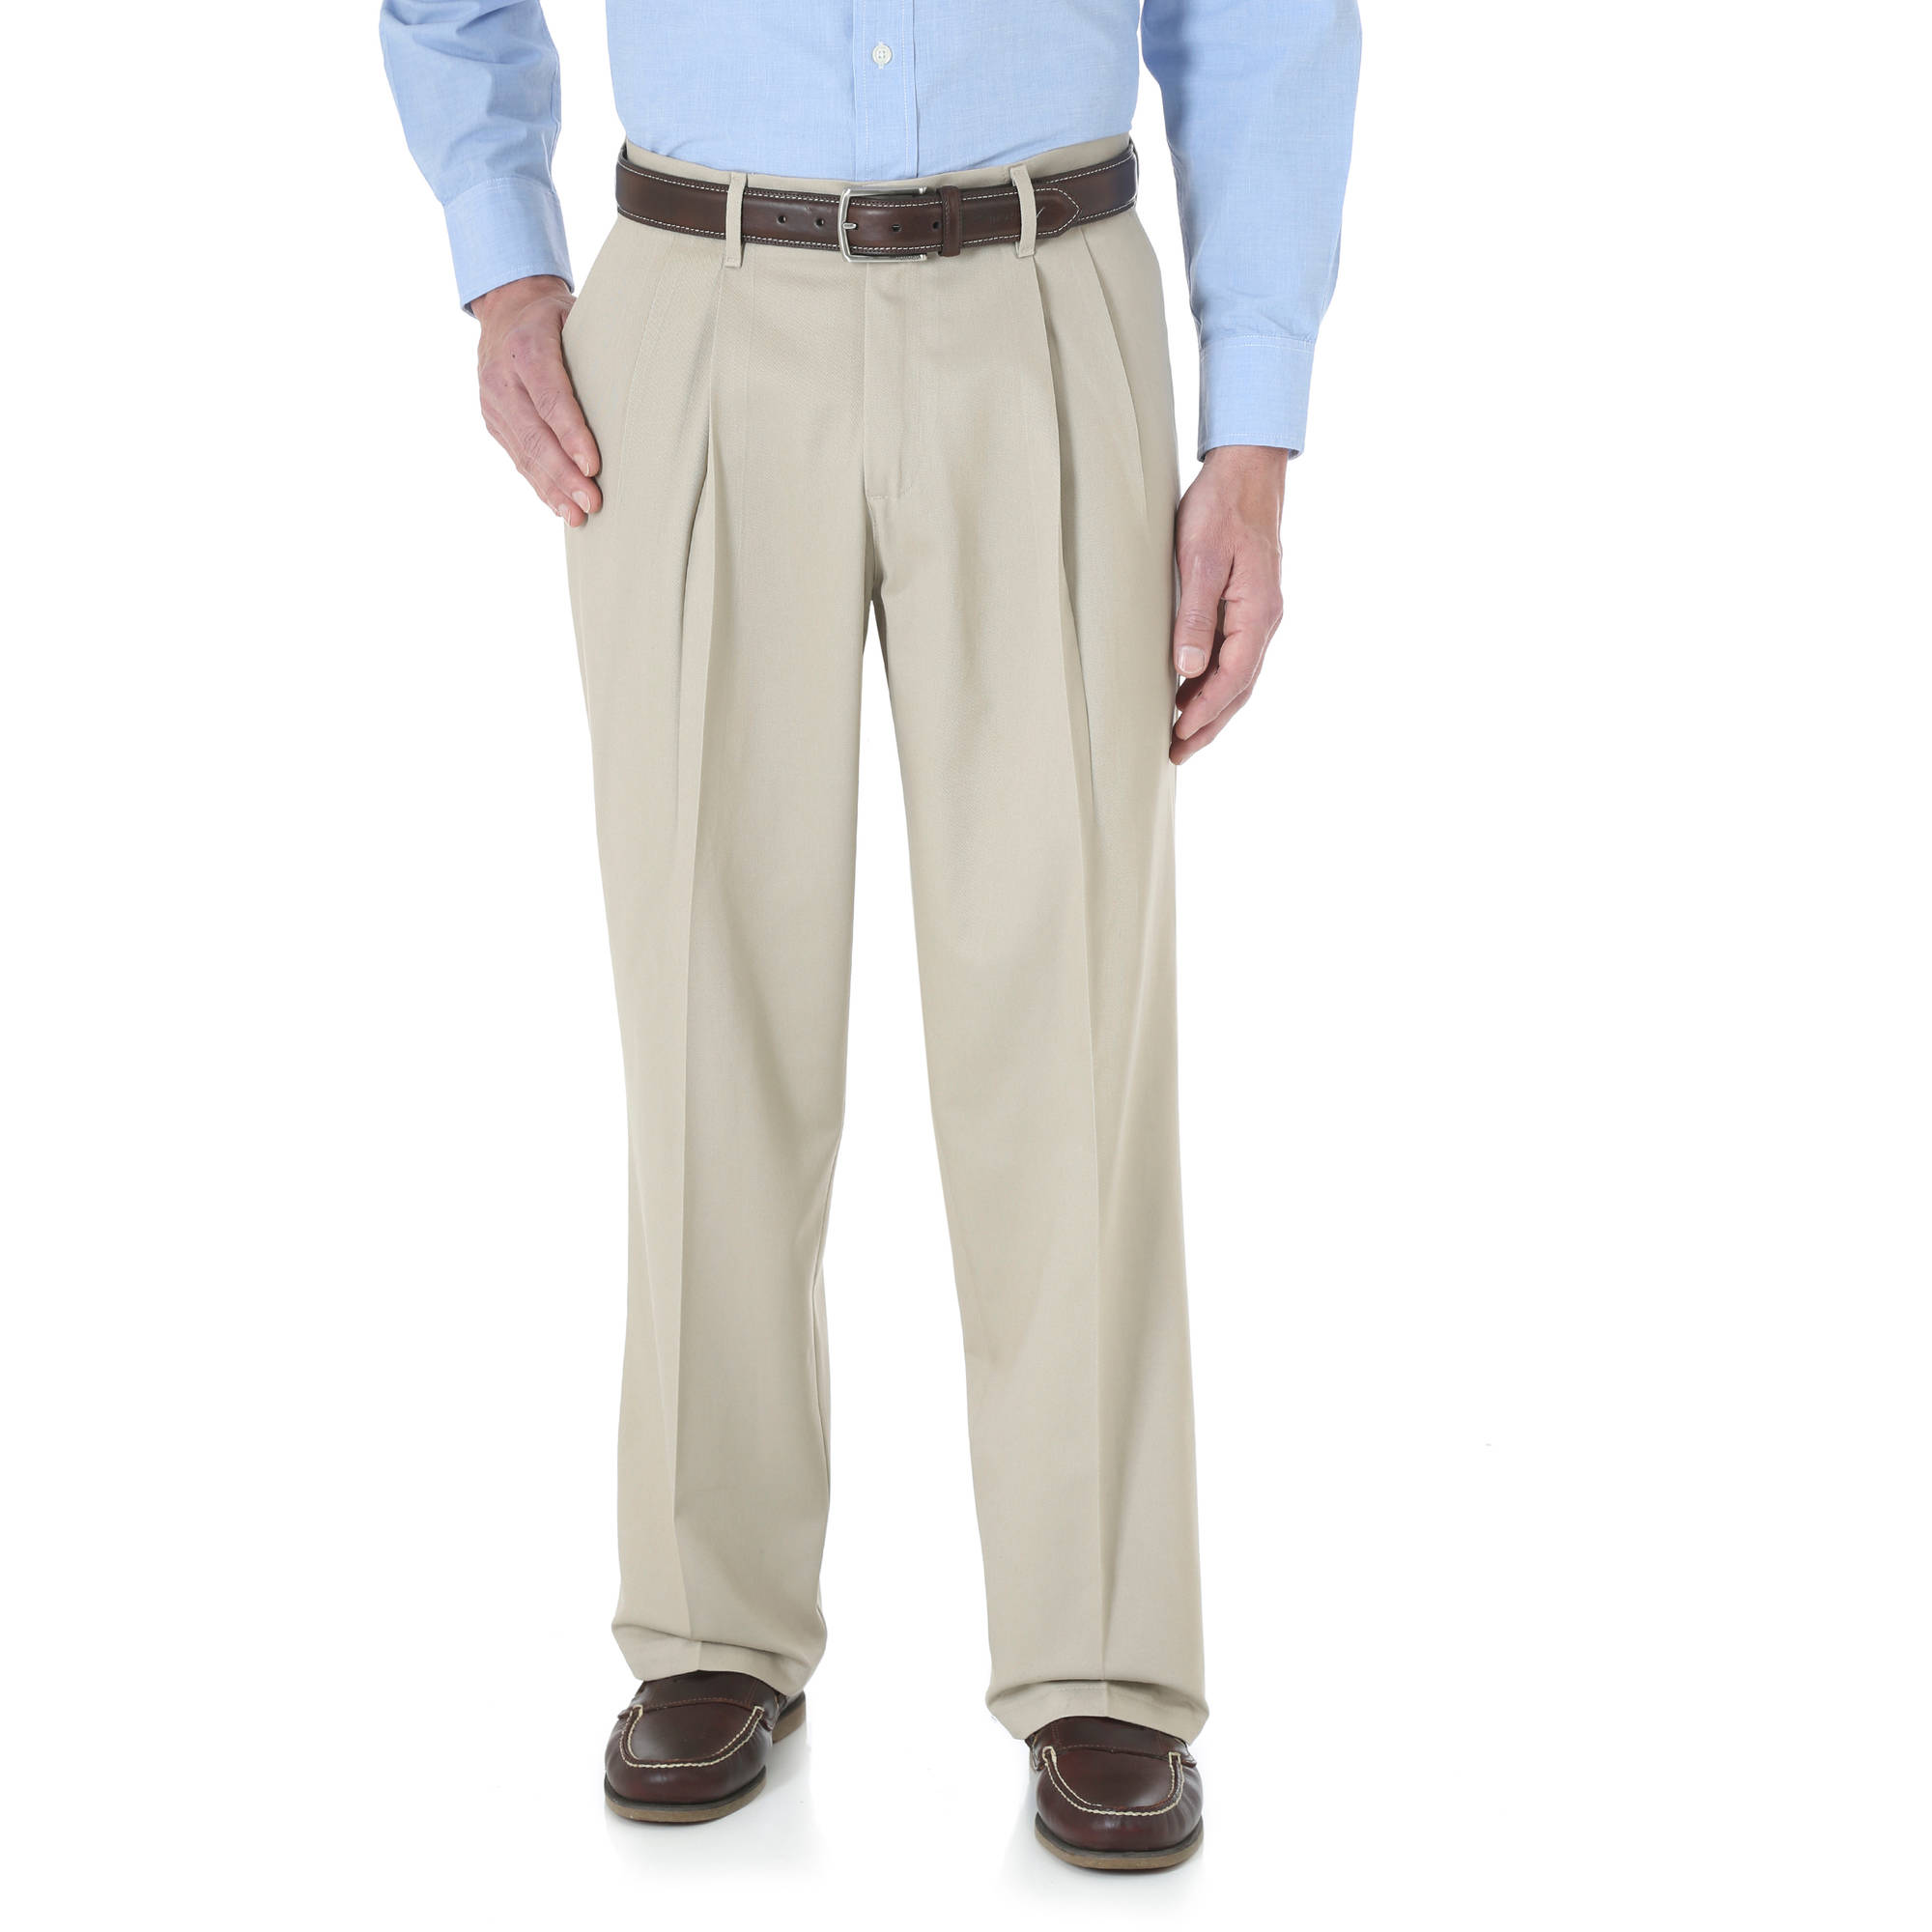 Khaki Pants For Big Men - White Pants 2016